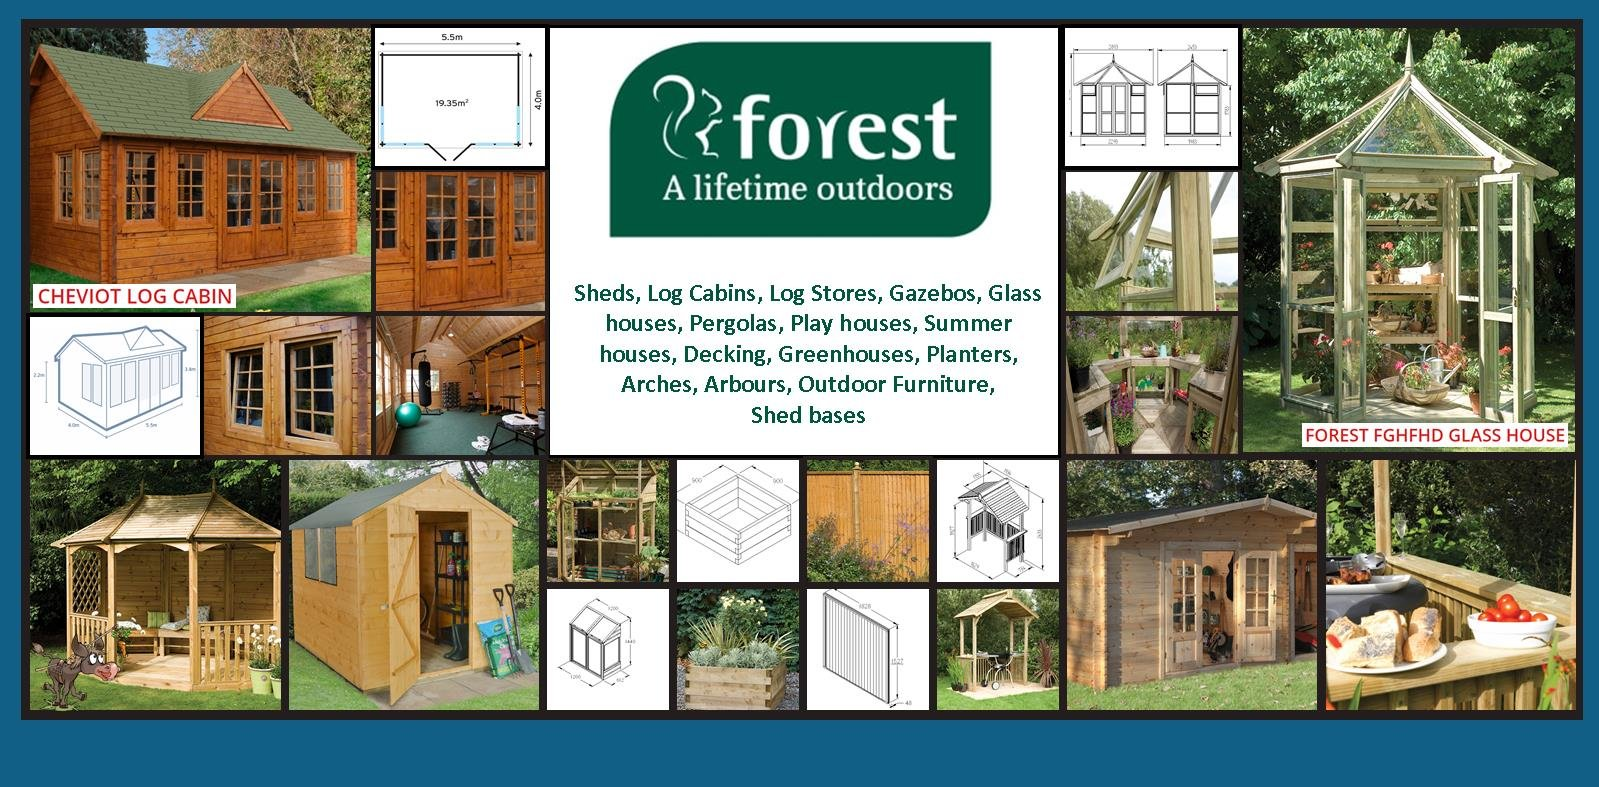 Wonkee Donkee Forest Garden for your garden storage and recreation. For Sheds, Workshops, Summer Houses, Glasshouses, Playhouses and other garden furniture and features.